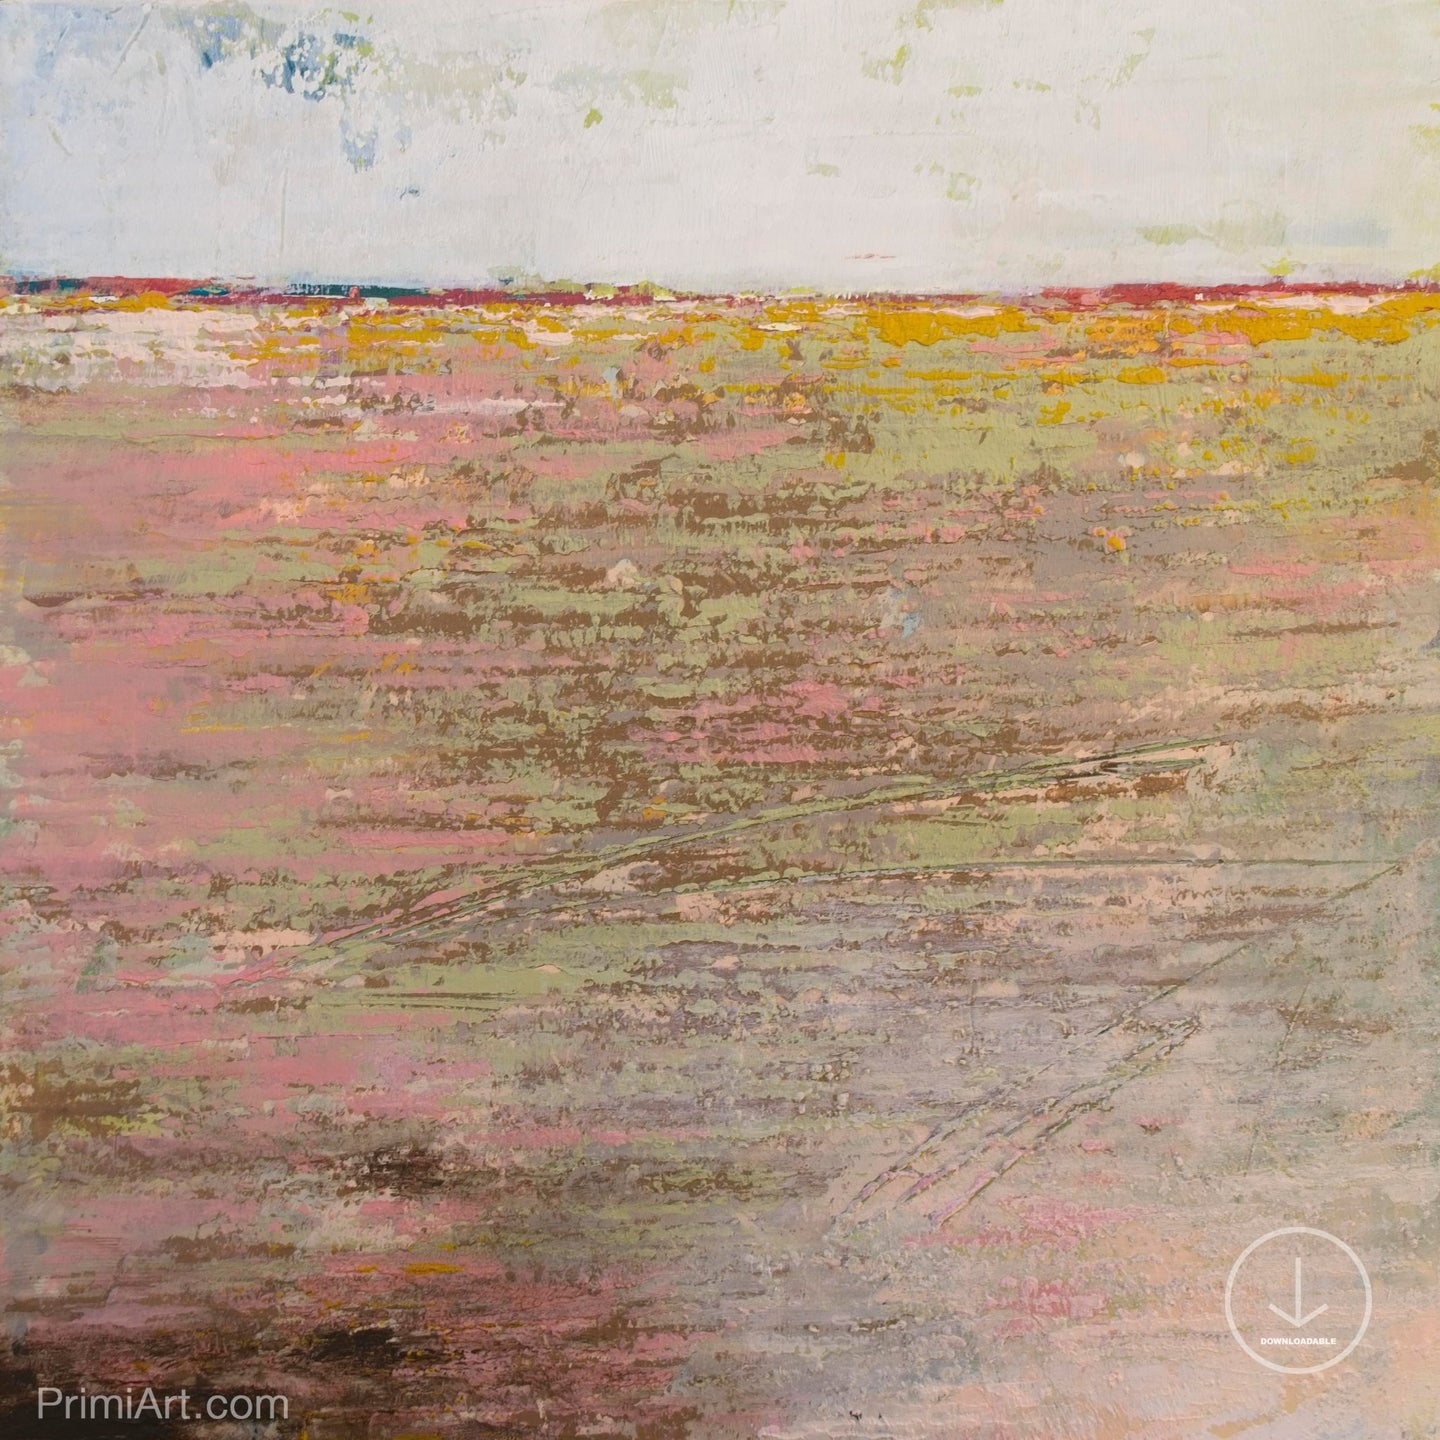 Pink abstract seascape painting